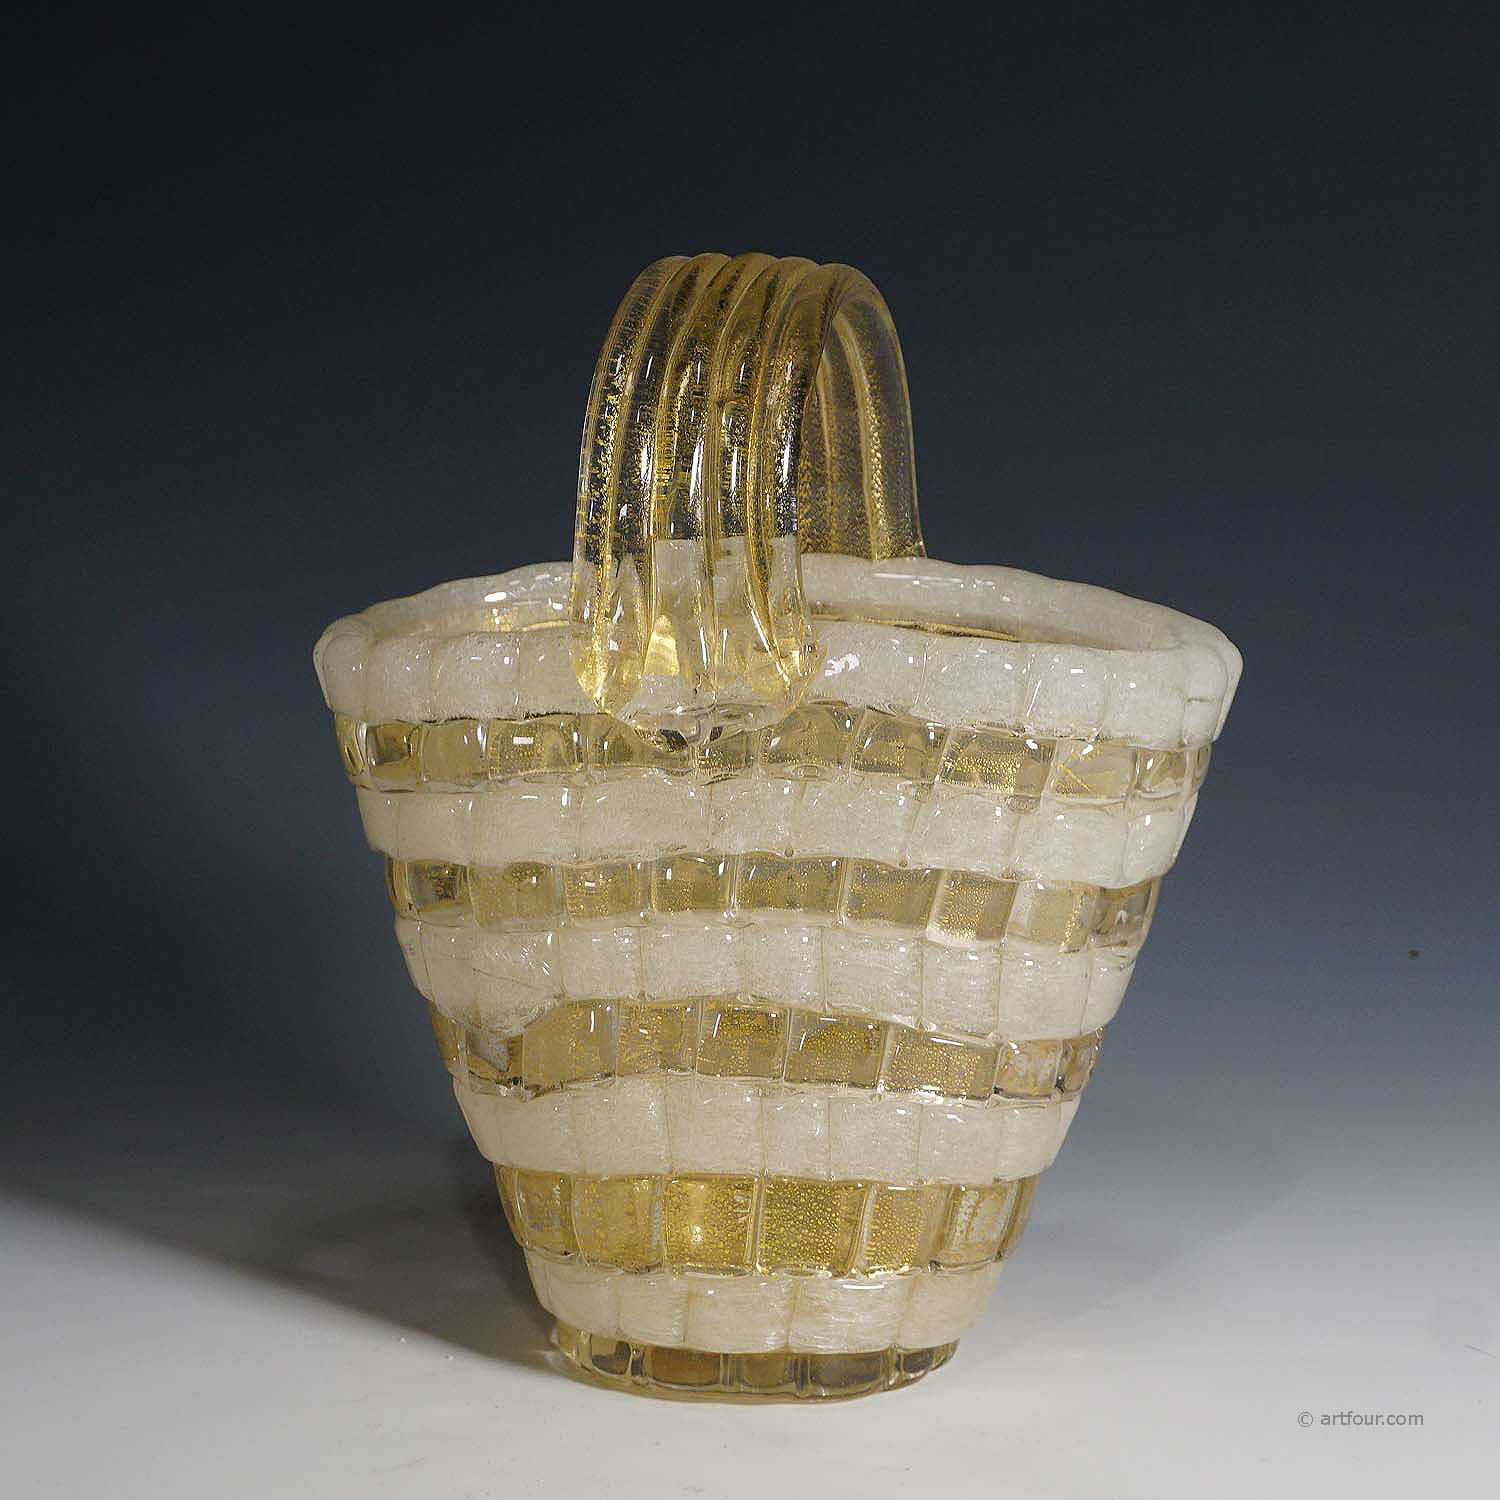 ercole barovier for barovier & toso attr. glass basket circa 1940ties